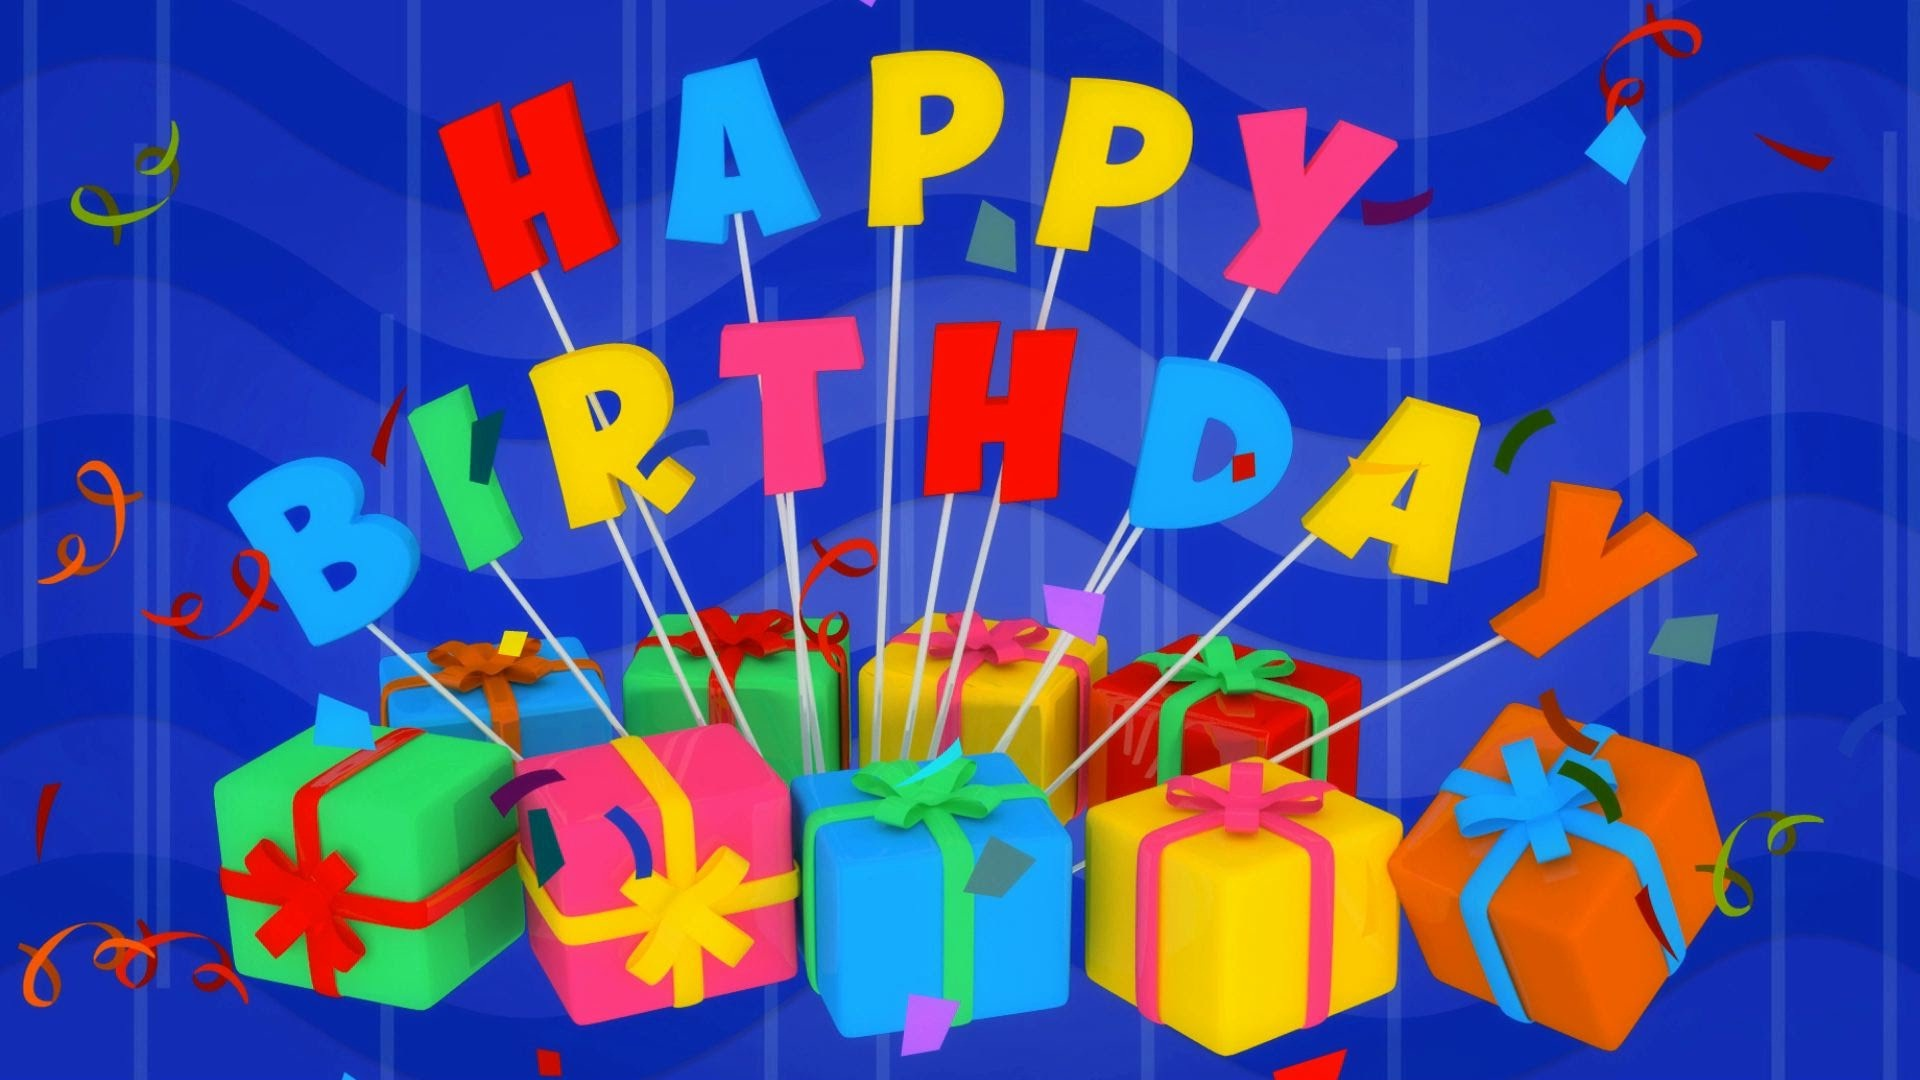 hd wallpaper happy birthday gifts ; Happy-birthday-many-wishes-with-gifts